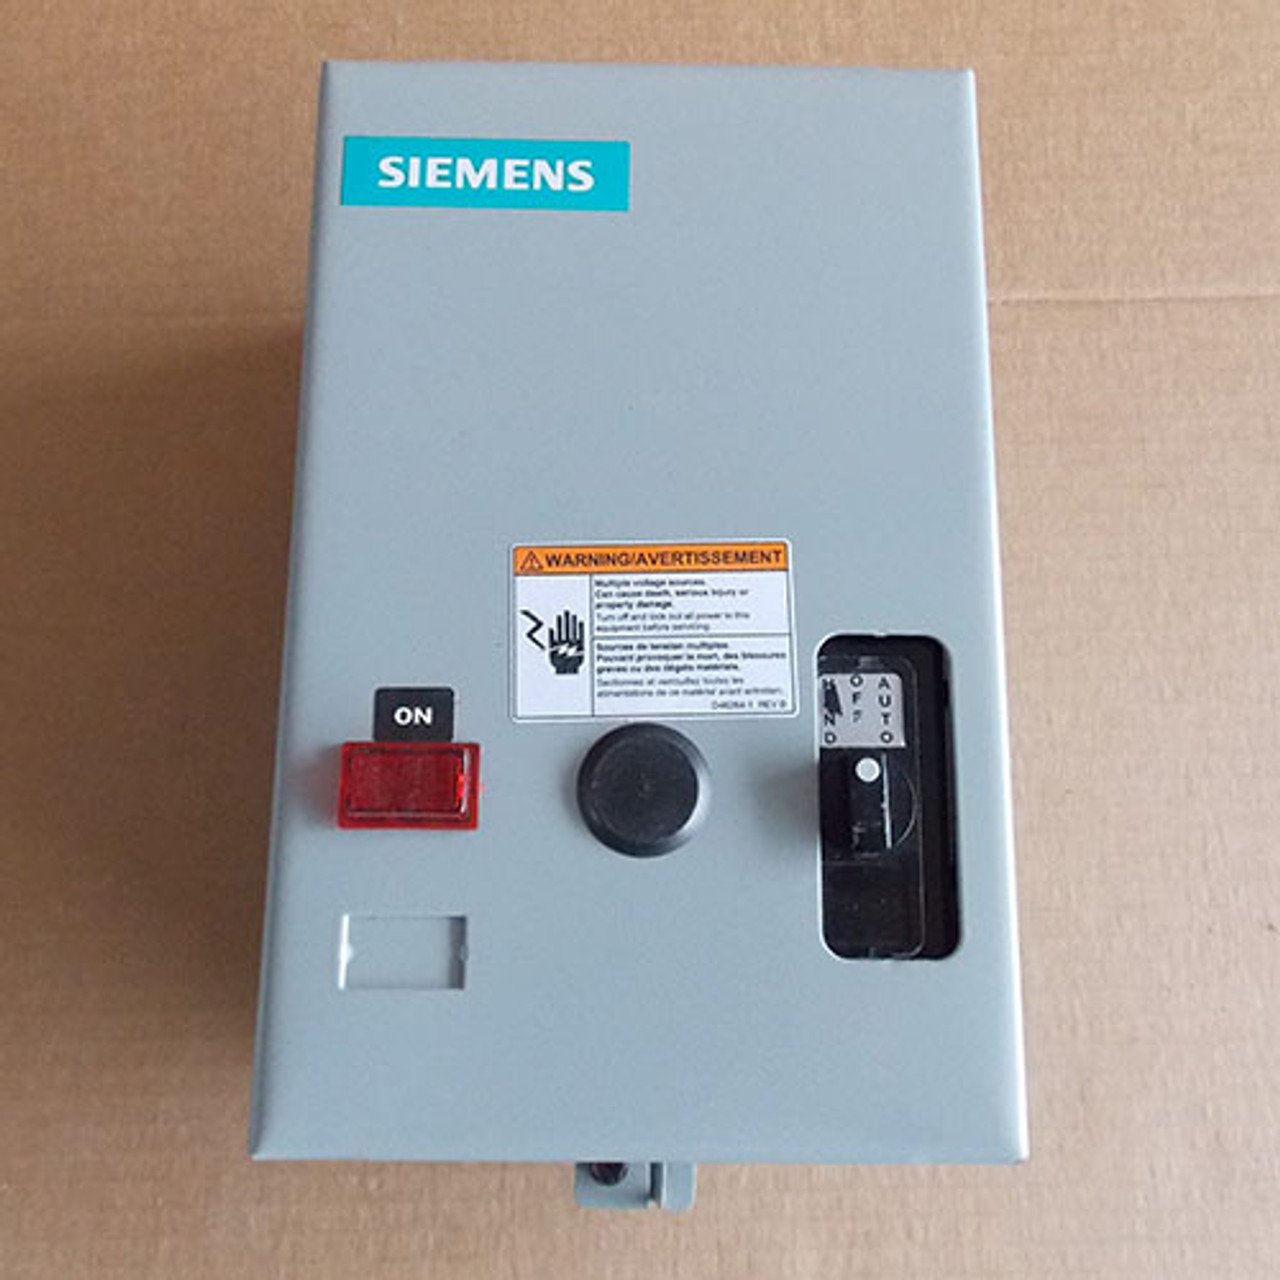 Siemens LEN01B006277A 20A 6P 277V Lighting Contactor N1 with On/Off Switch - New